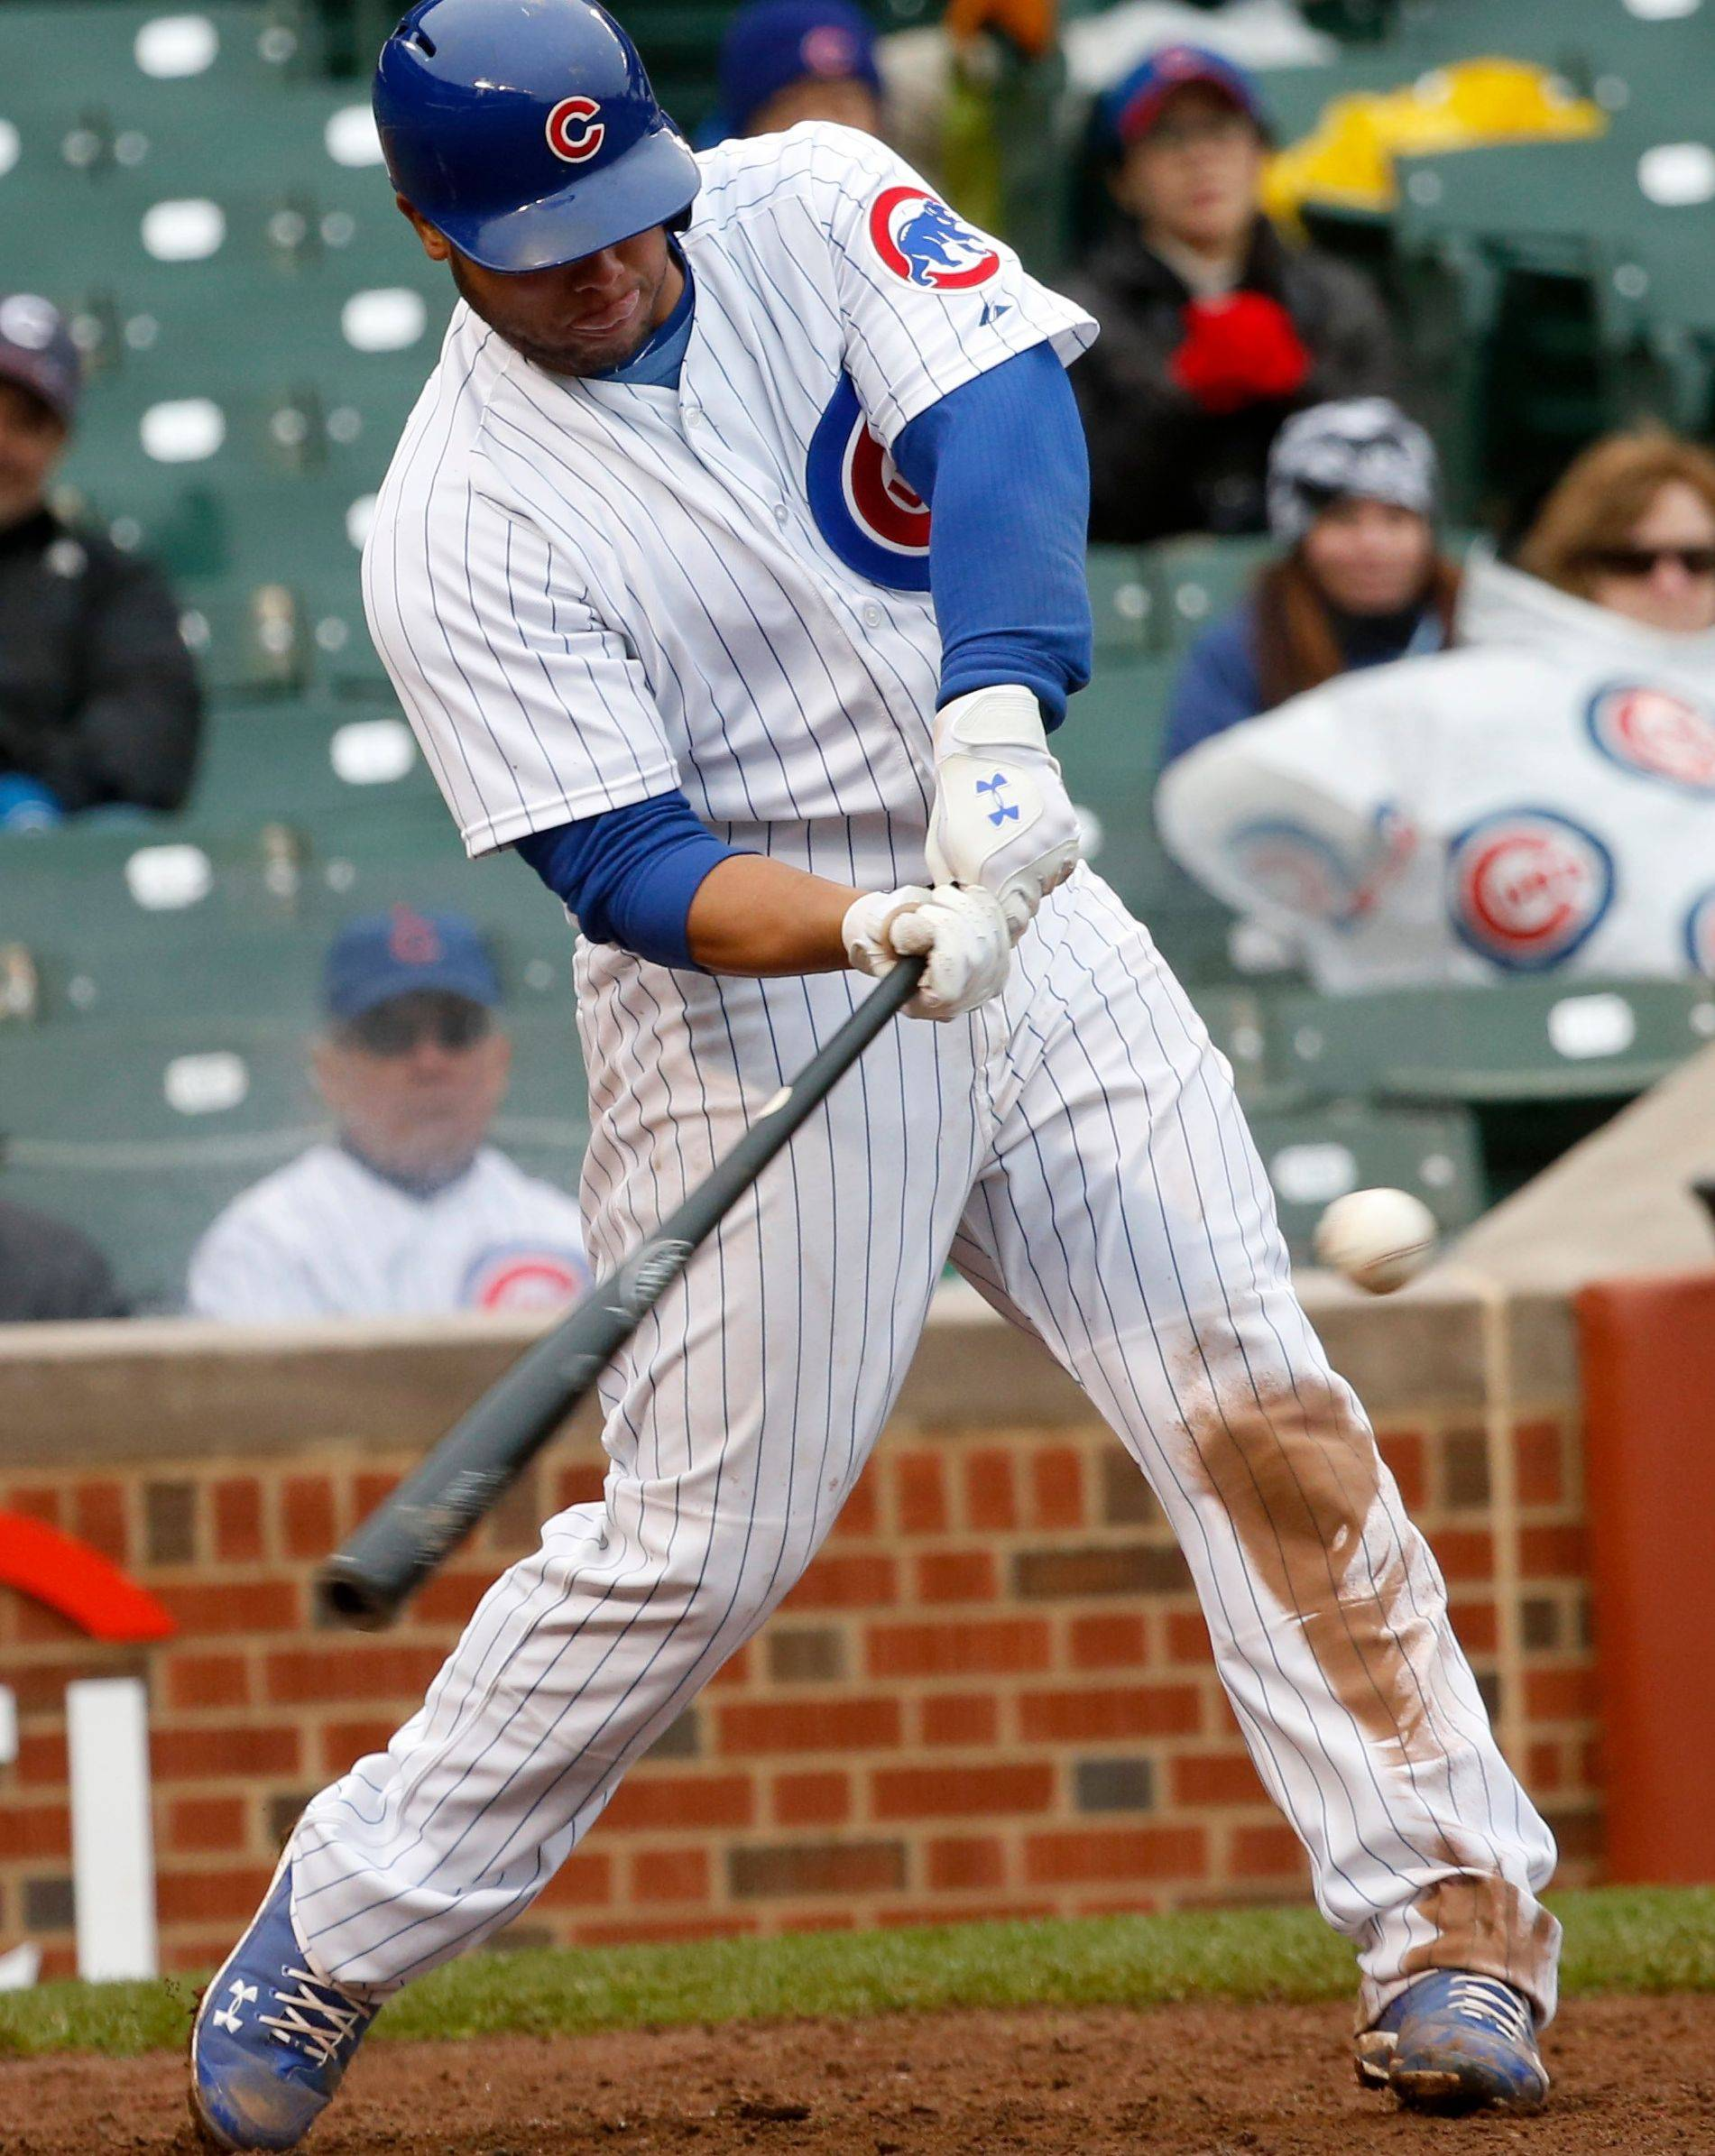 Cubs catcher Welington Castillo had a solid and productive season for the Cubs, who need more offensive spark from almost every position next season.